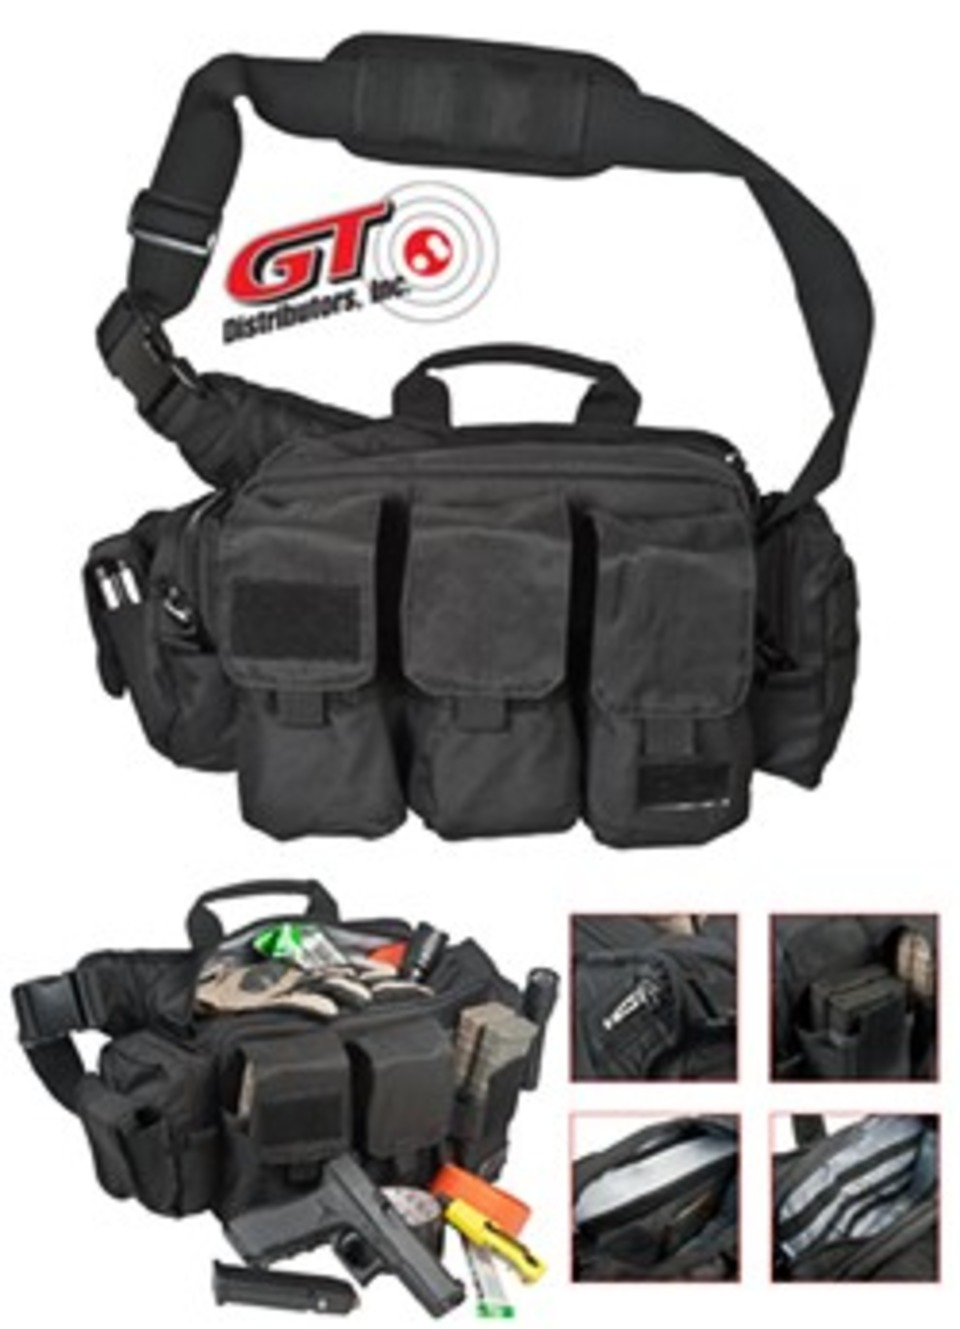 Through Gt Distributors The Rugged Active Shooter Bail Out Bag By 5 11 Tactical Features Tough 1000 D Nylon Body Fabric Construction That Delivers Extreme